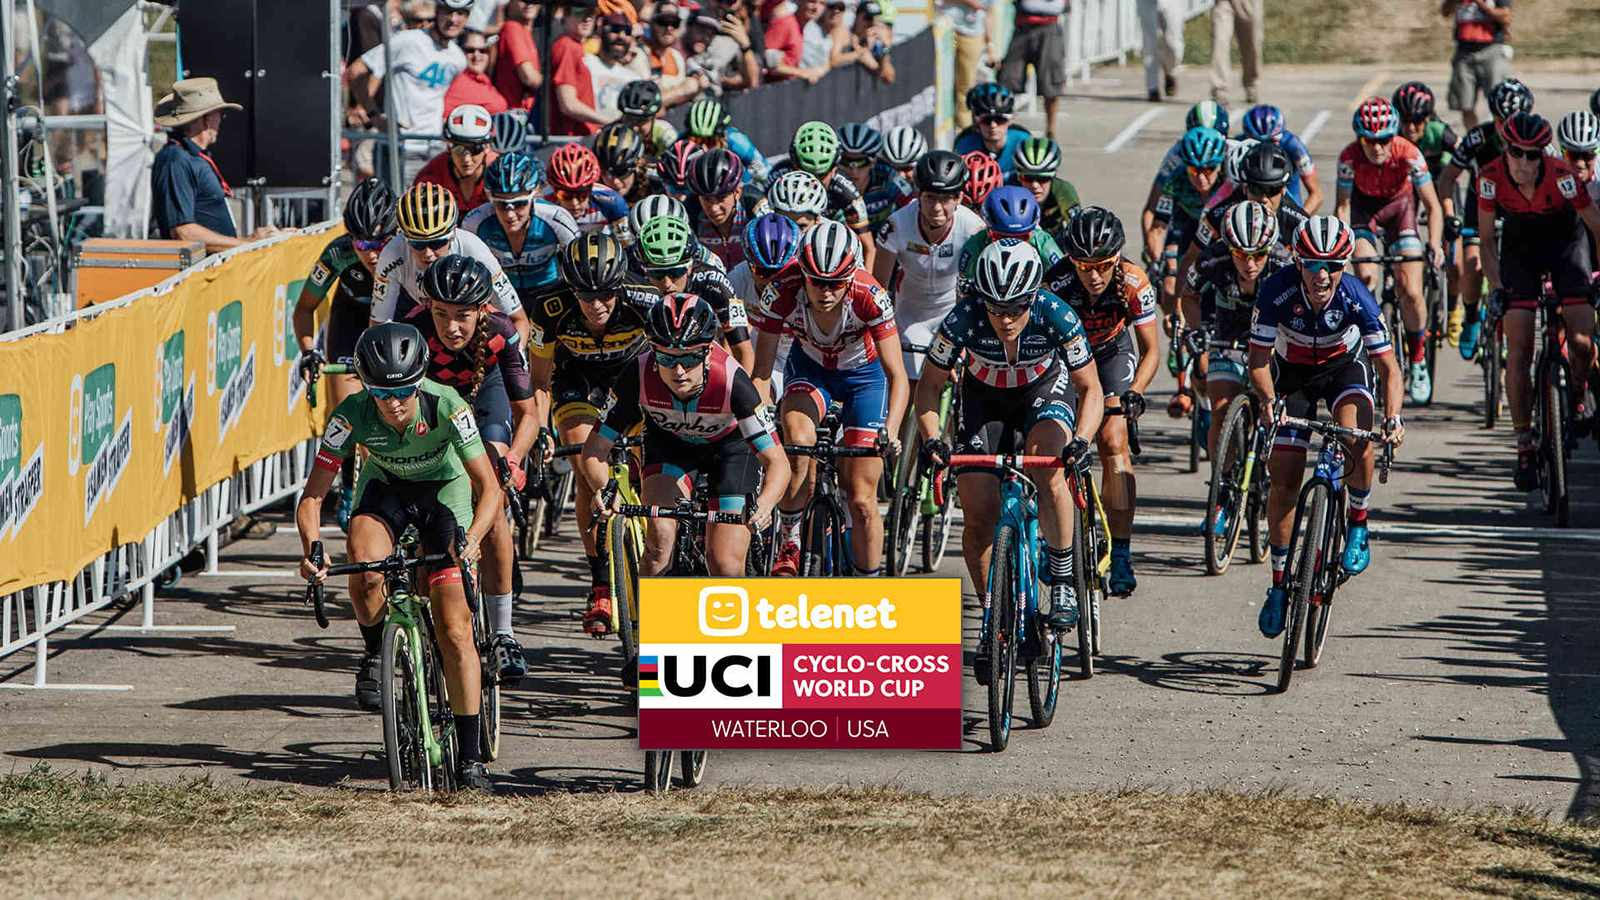 The UCI CX World Cup opens with the first round in Waterloo, Wisconsin on 23 September